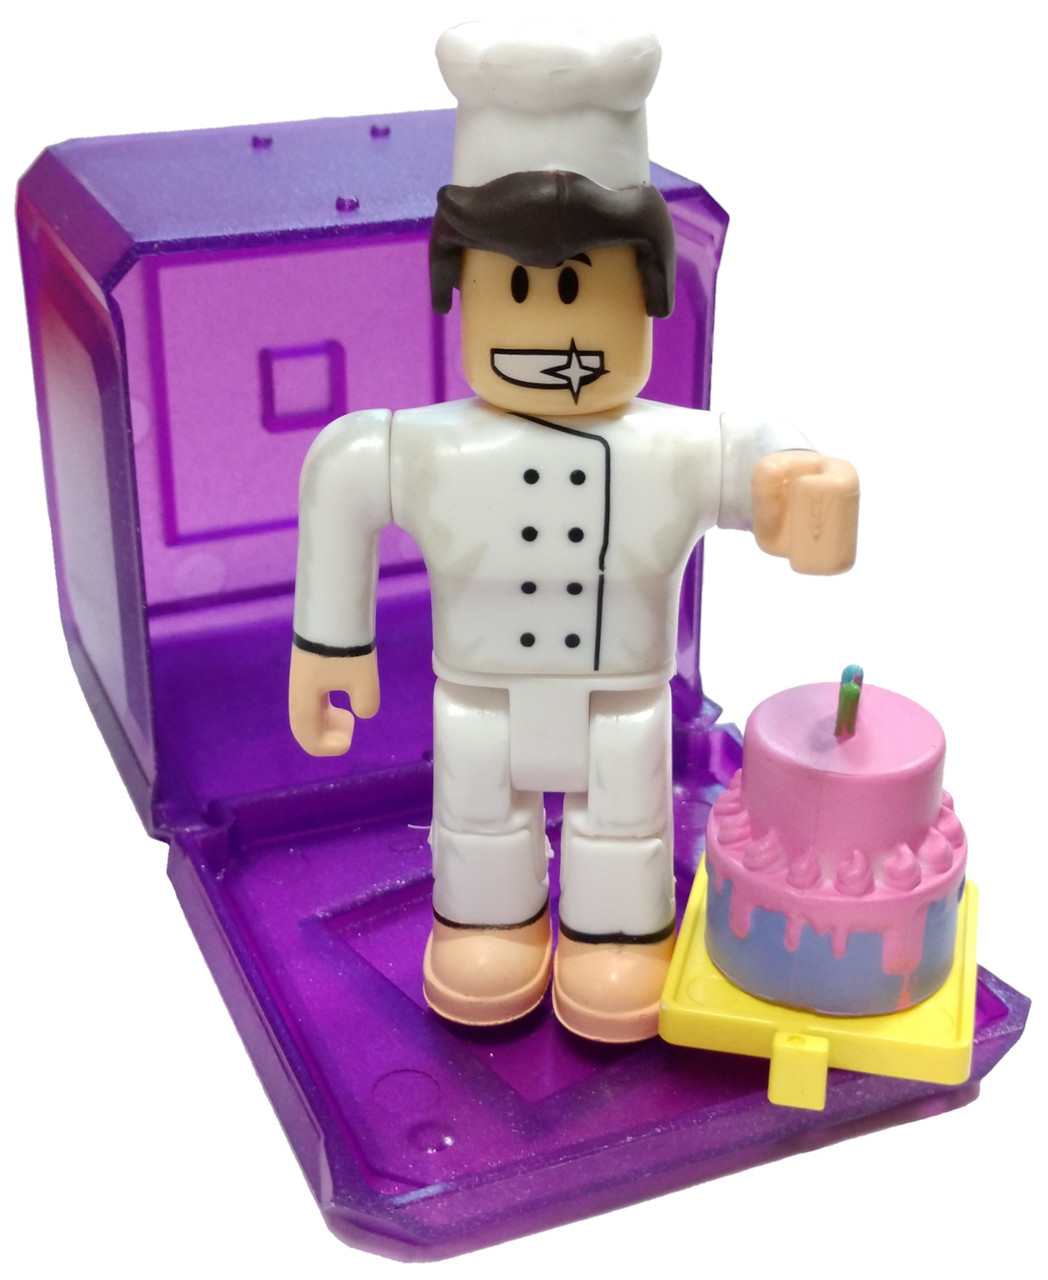 Details About Roblox Celebrity Collection Series 3 Mystery Pack Purple Cube - Roblox Celebrity Collection Series 3 Bakers Valley